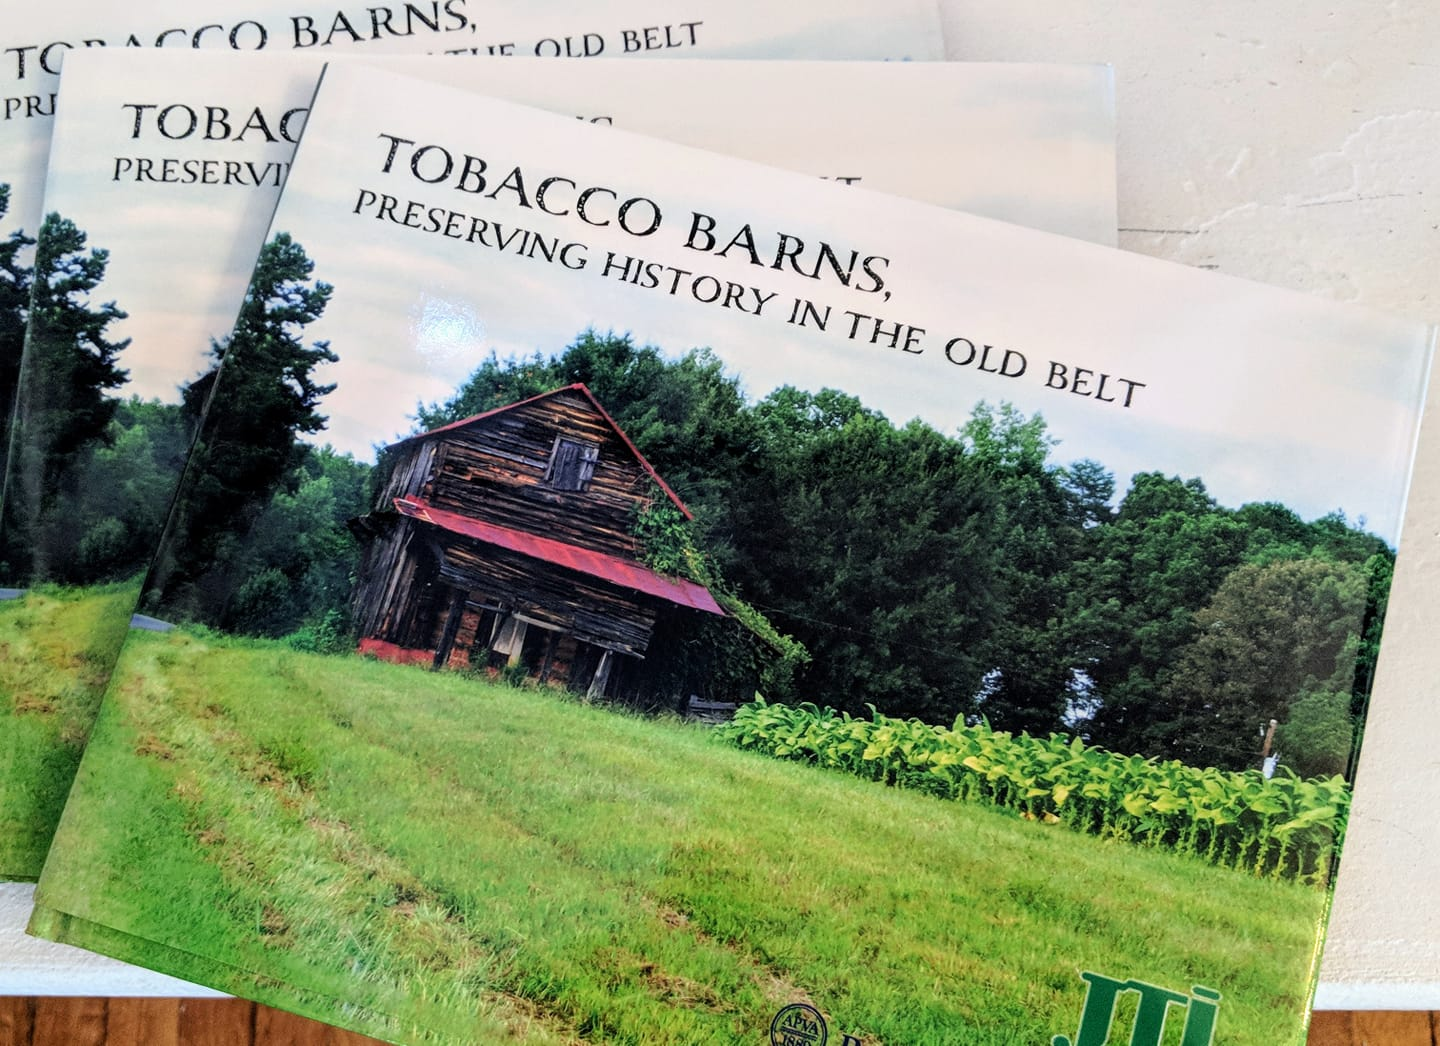 Tobacco Barns, Preserving History in the Old Belt